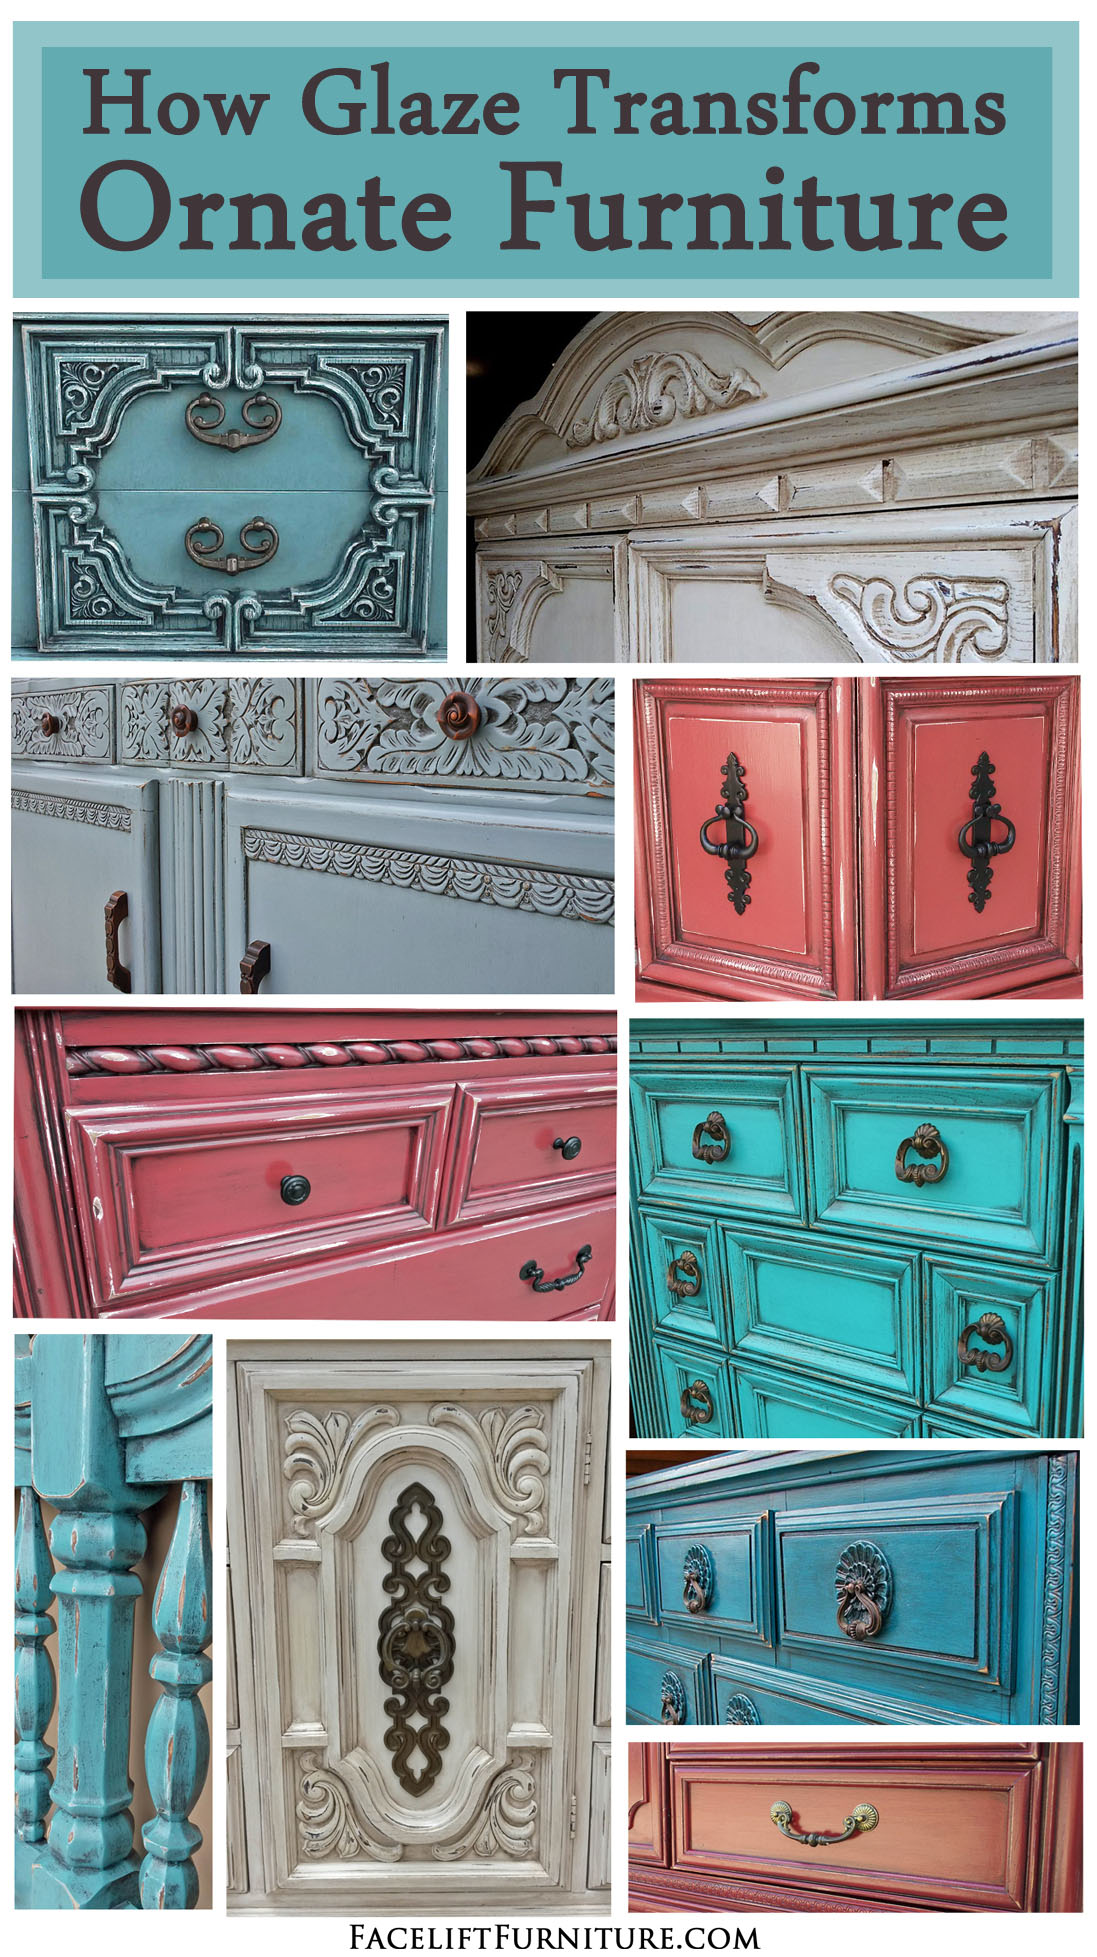 How Glaze Transforms Ornate Furniture ~ Facelift Furniture   //www.faceliftfurniture.com/glaze-transforms-ornate-furniture/